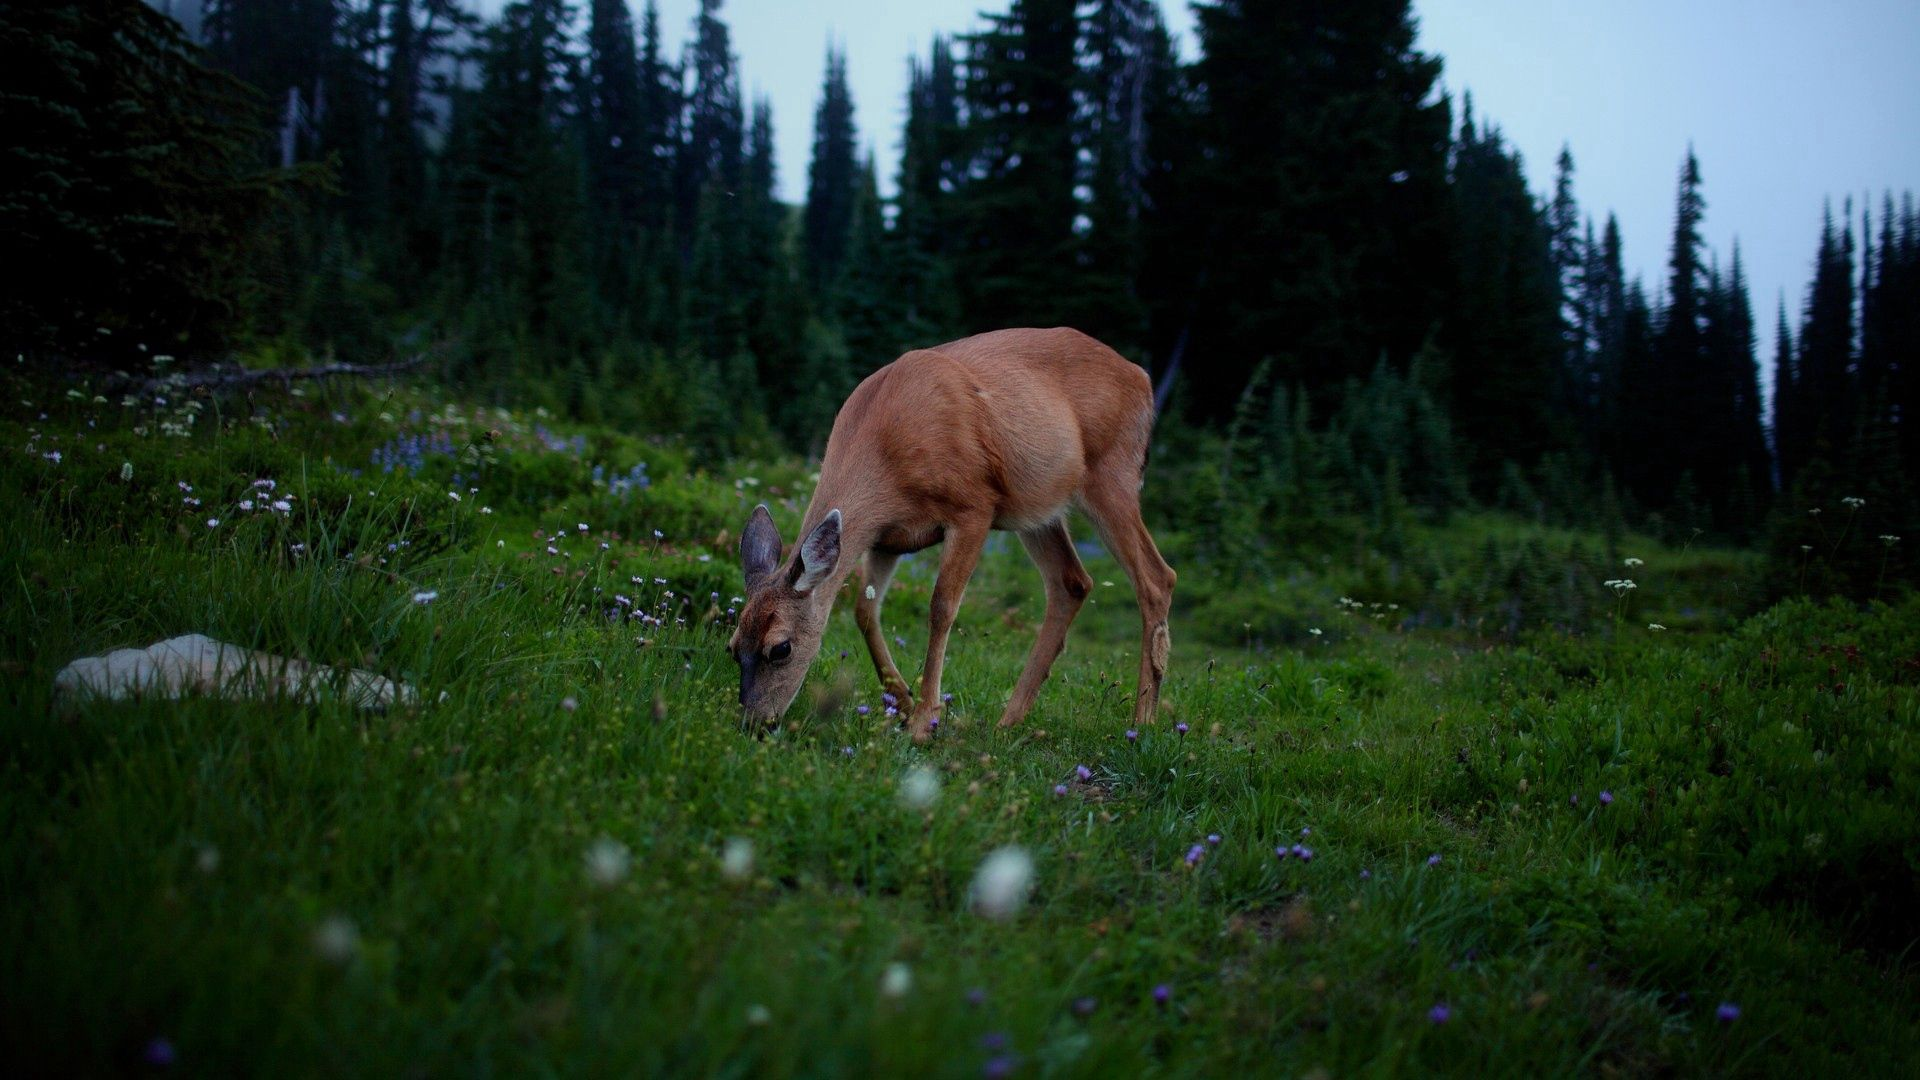 157276 download wallpaper Animals, Deer, Forest, Grass, Stroll, Dark screensavers and pictures for free